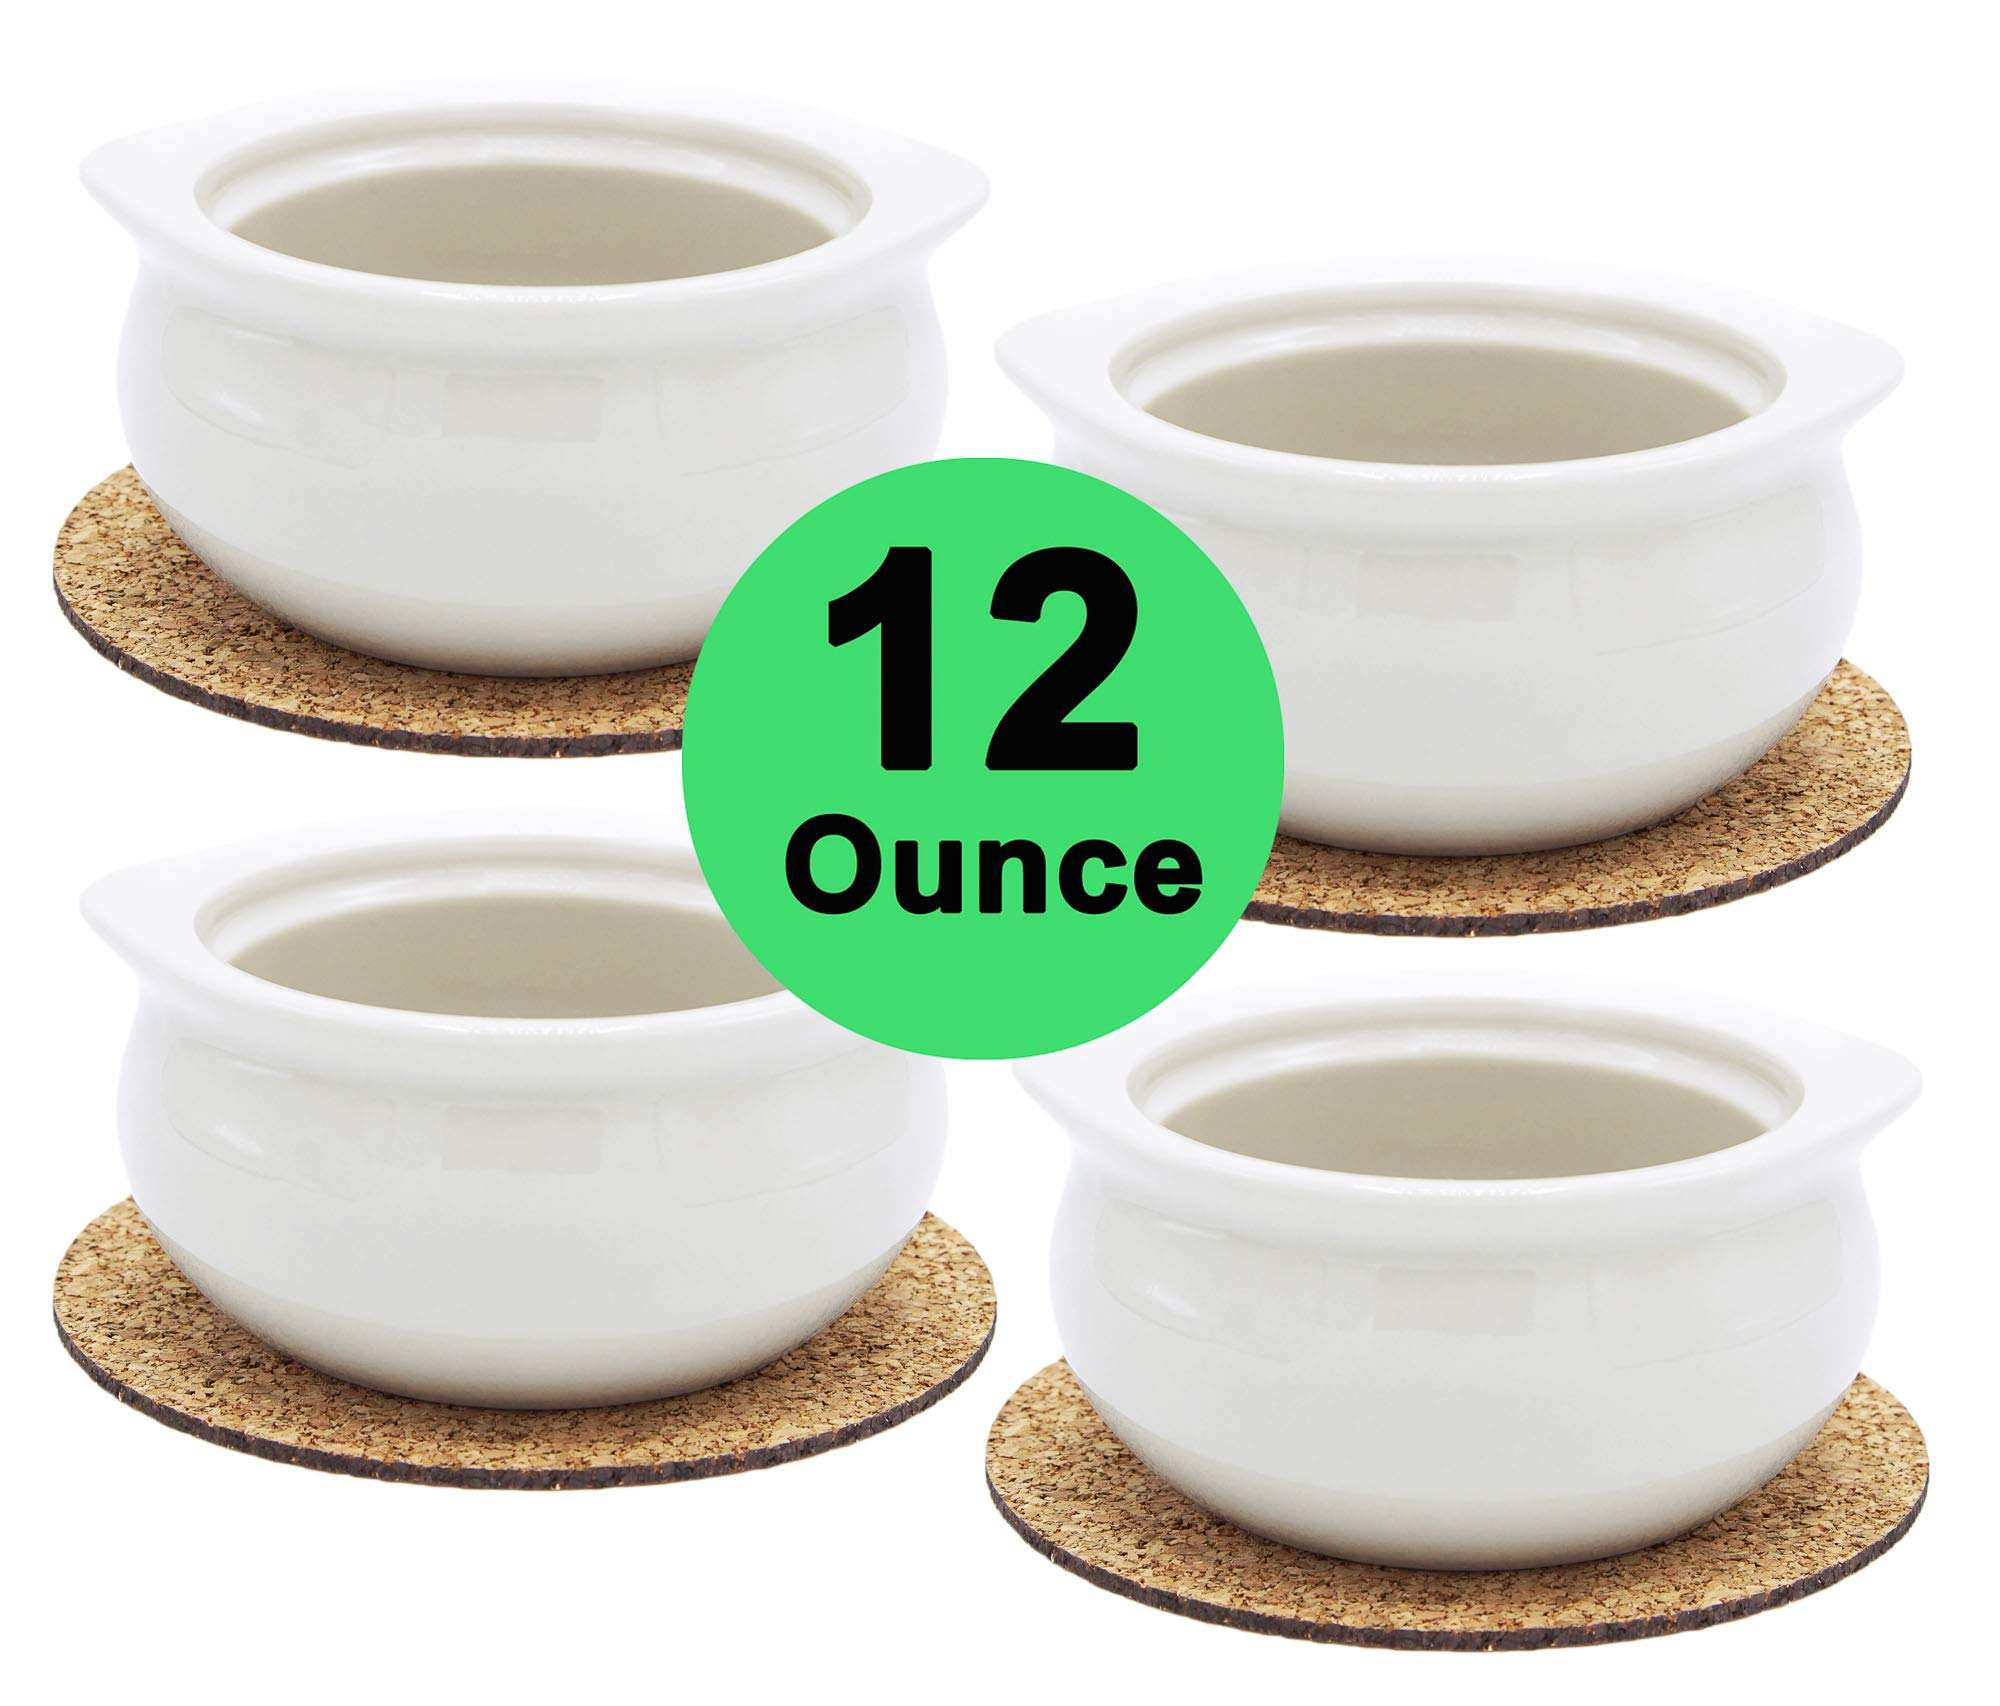 Premium Porcelain 12 Ounce Onion Soup Bowls - American White - Set of 4 with Cork Coasters - Classic European Style Healthy Portion Crocks – Oven- Microwave- Dishwasher safe